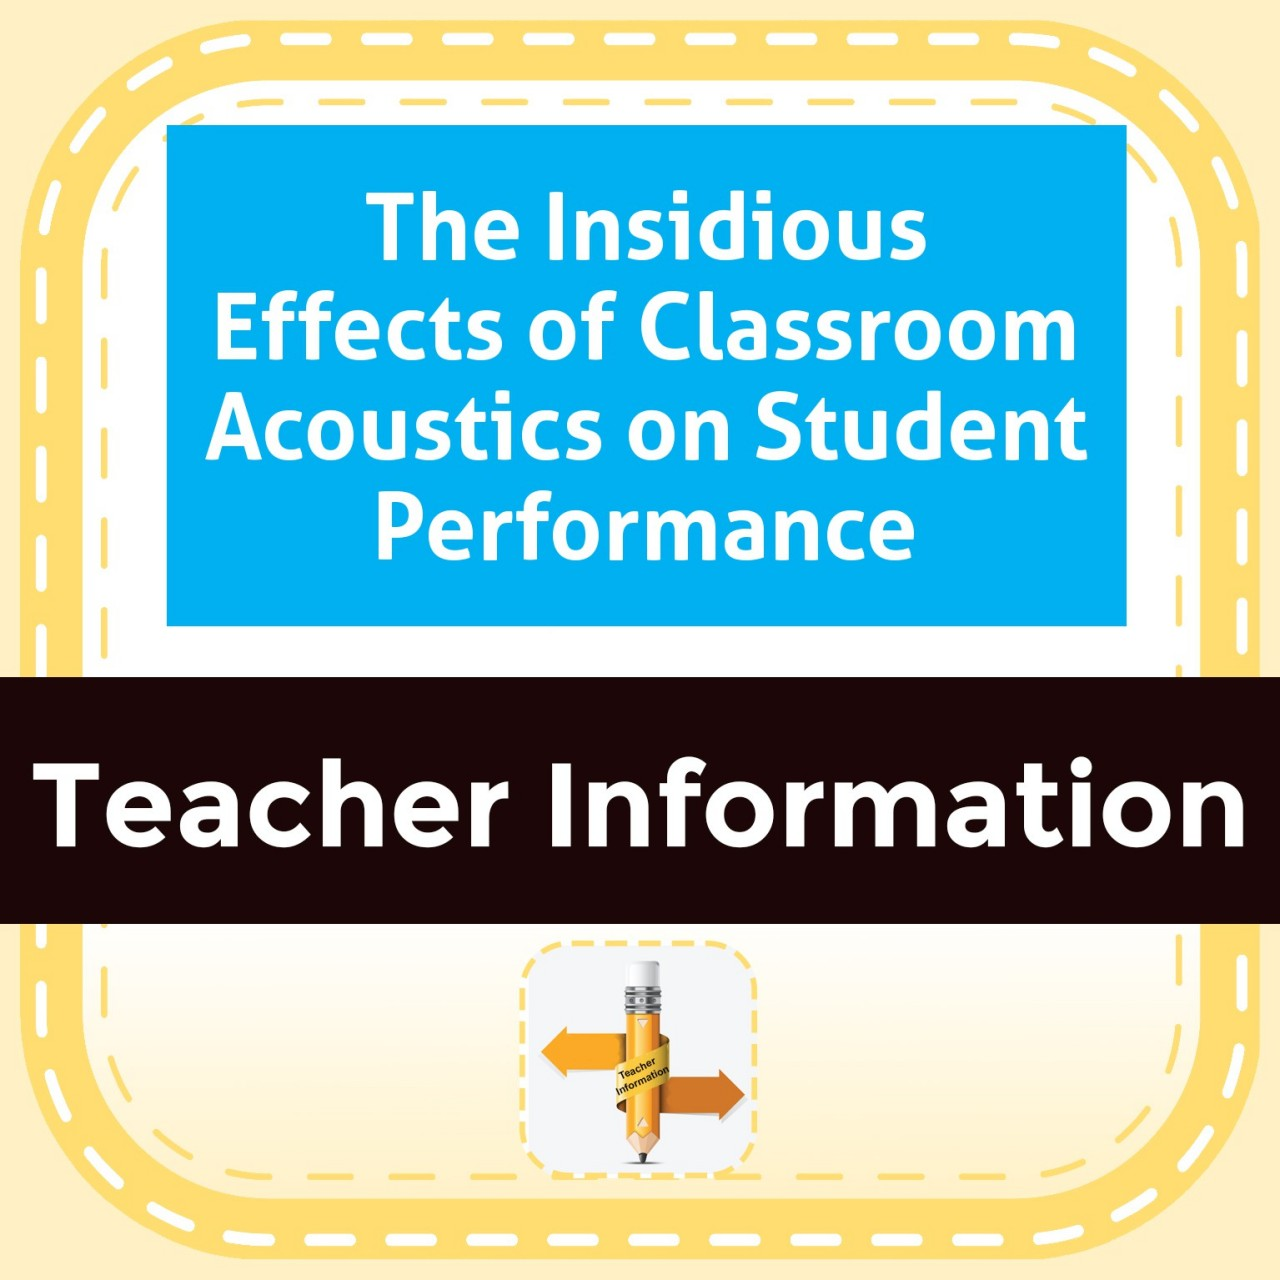 The Insidious Effects of Classroom Acoustics on Student Performance